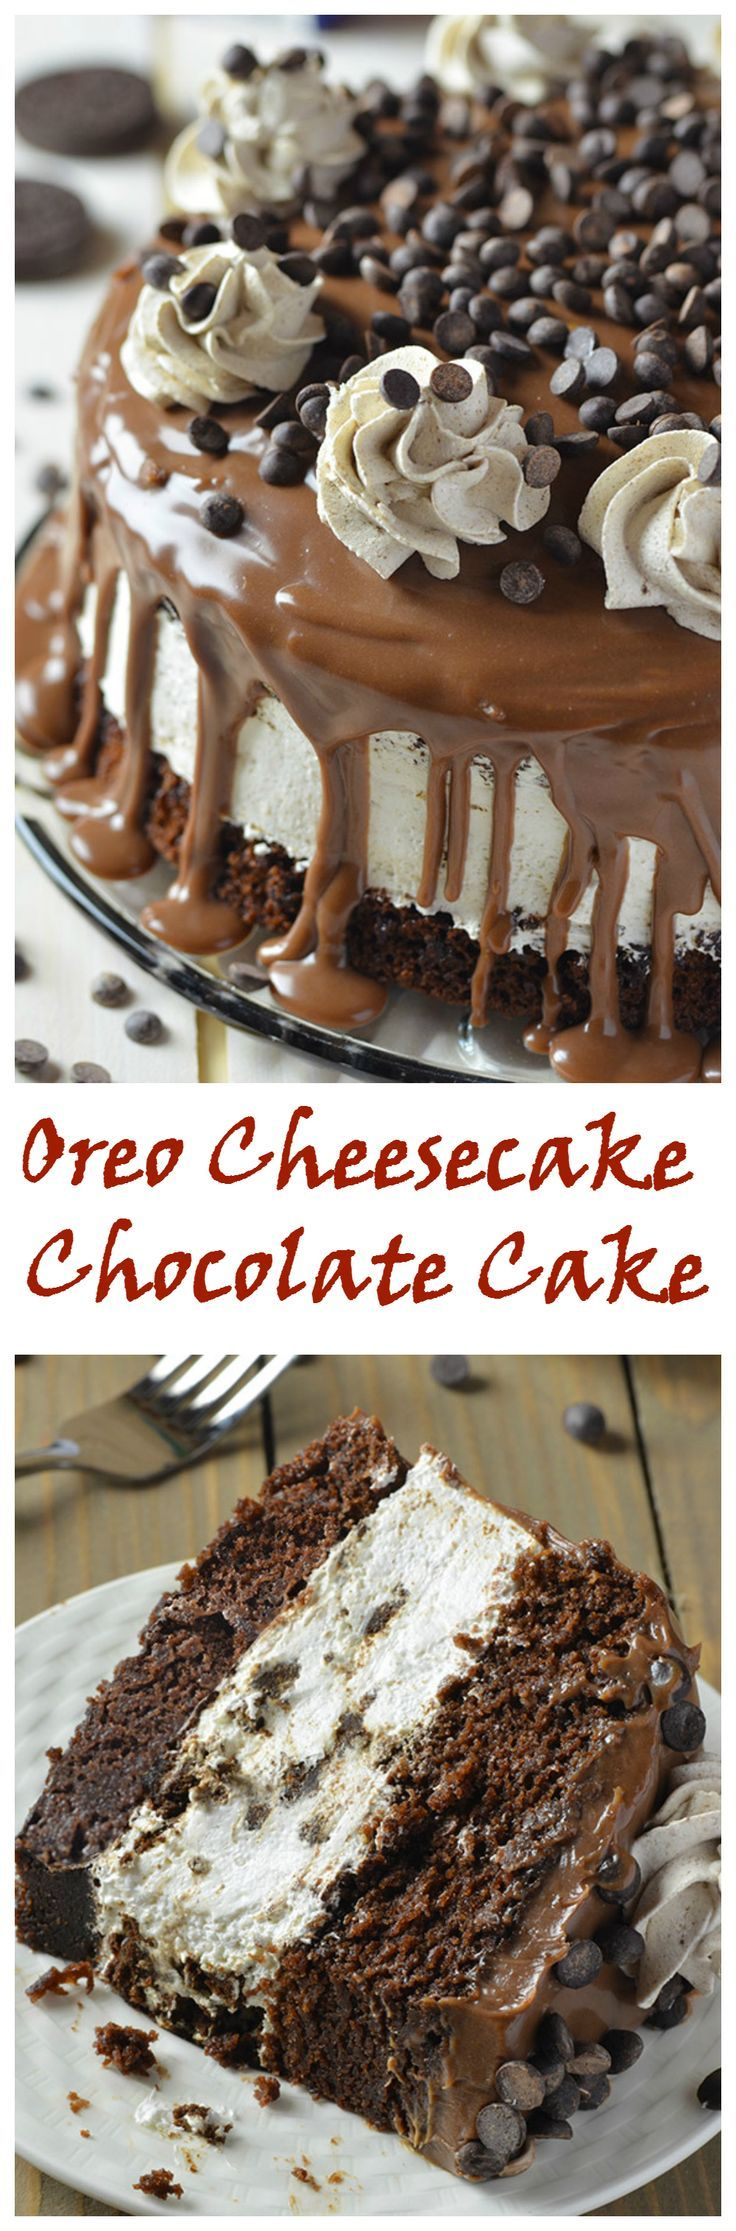 Oreo Cheesecake Chocolate Cake!  via OMG Chocolate Desserts.  OMG!